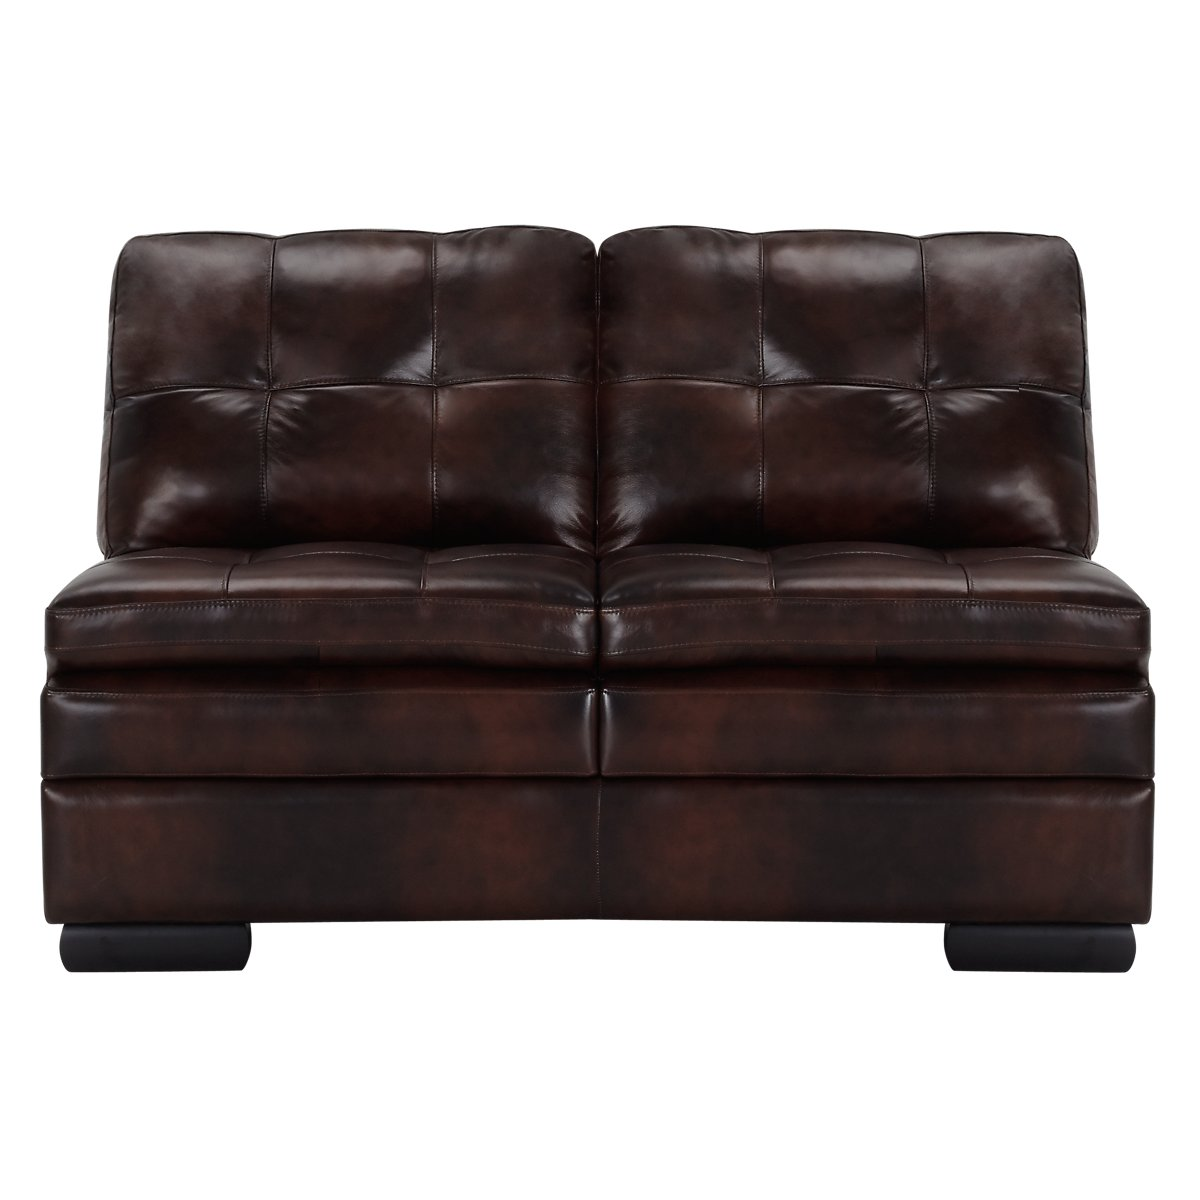 City furniture trevor dark brown leather large right for Brown leather sofa with chaise lounge